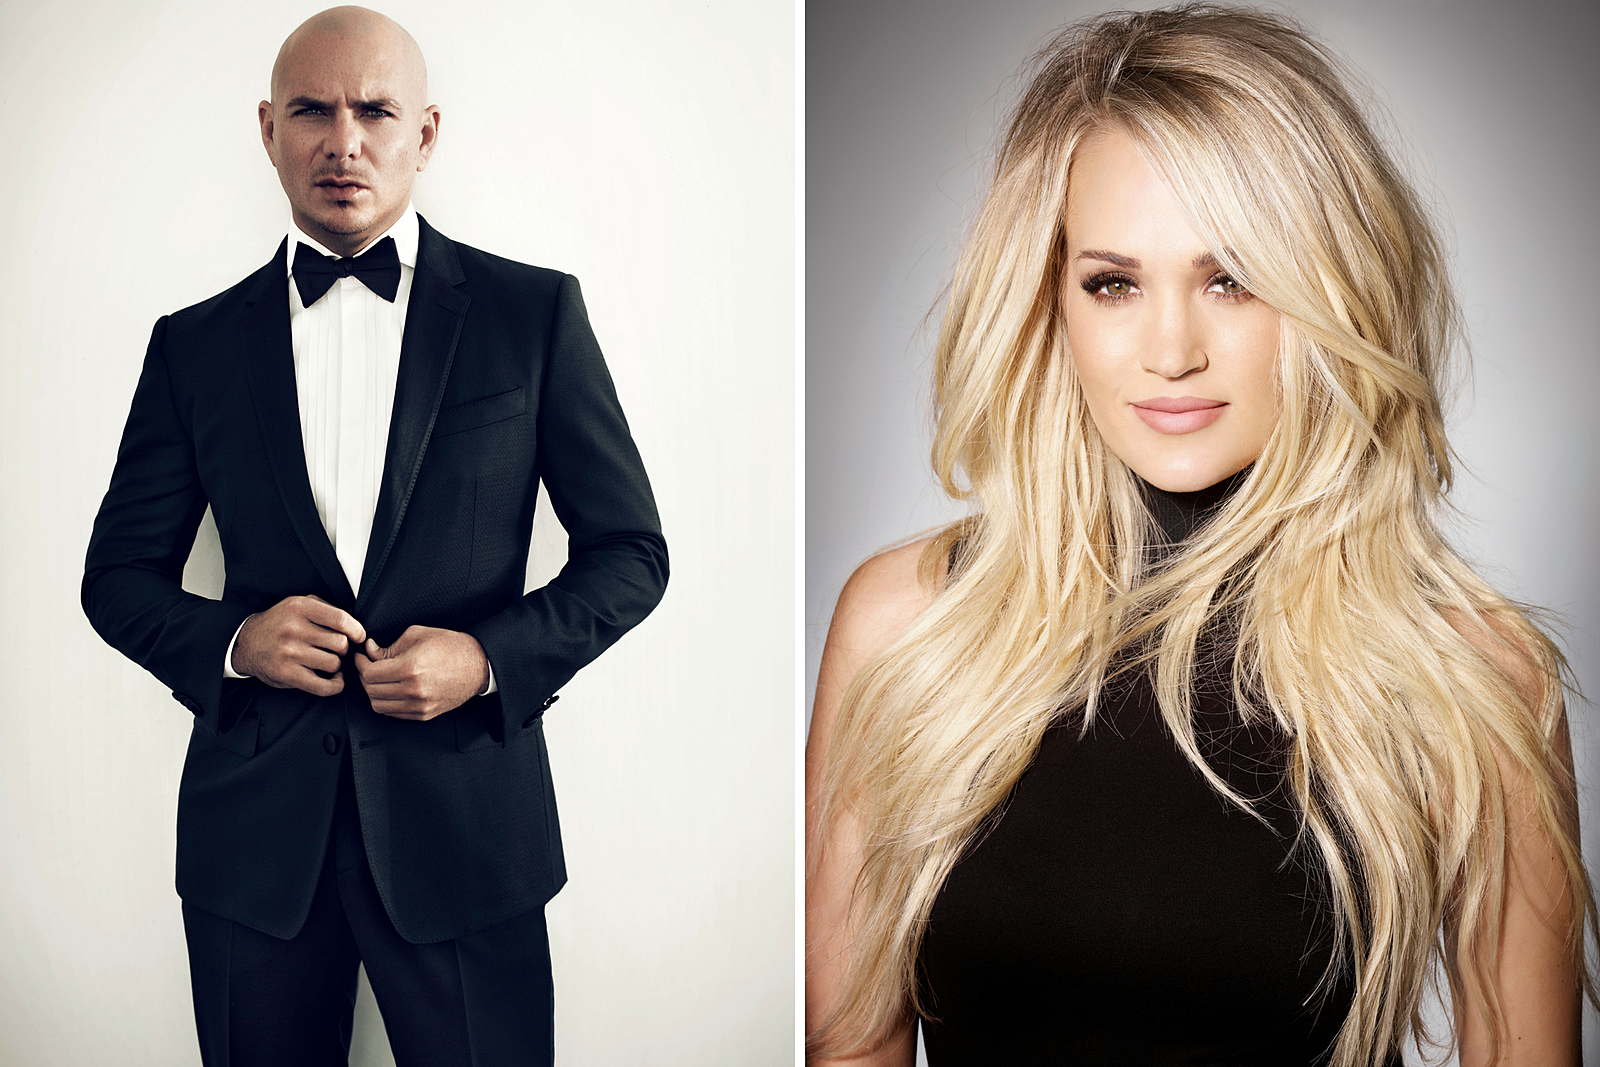 Pitbull And Carrie Underwood Hard Rock Presale Code